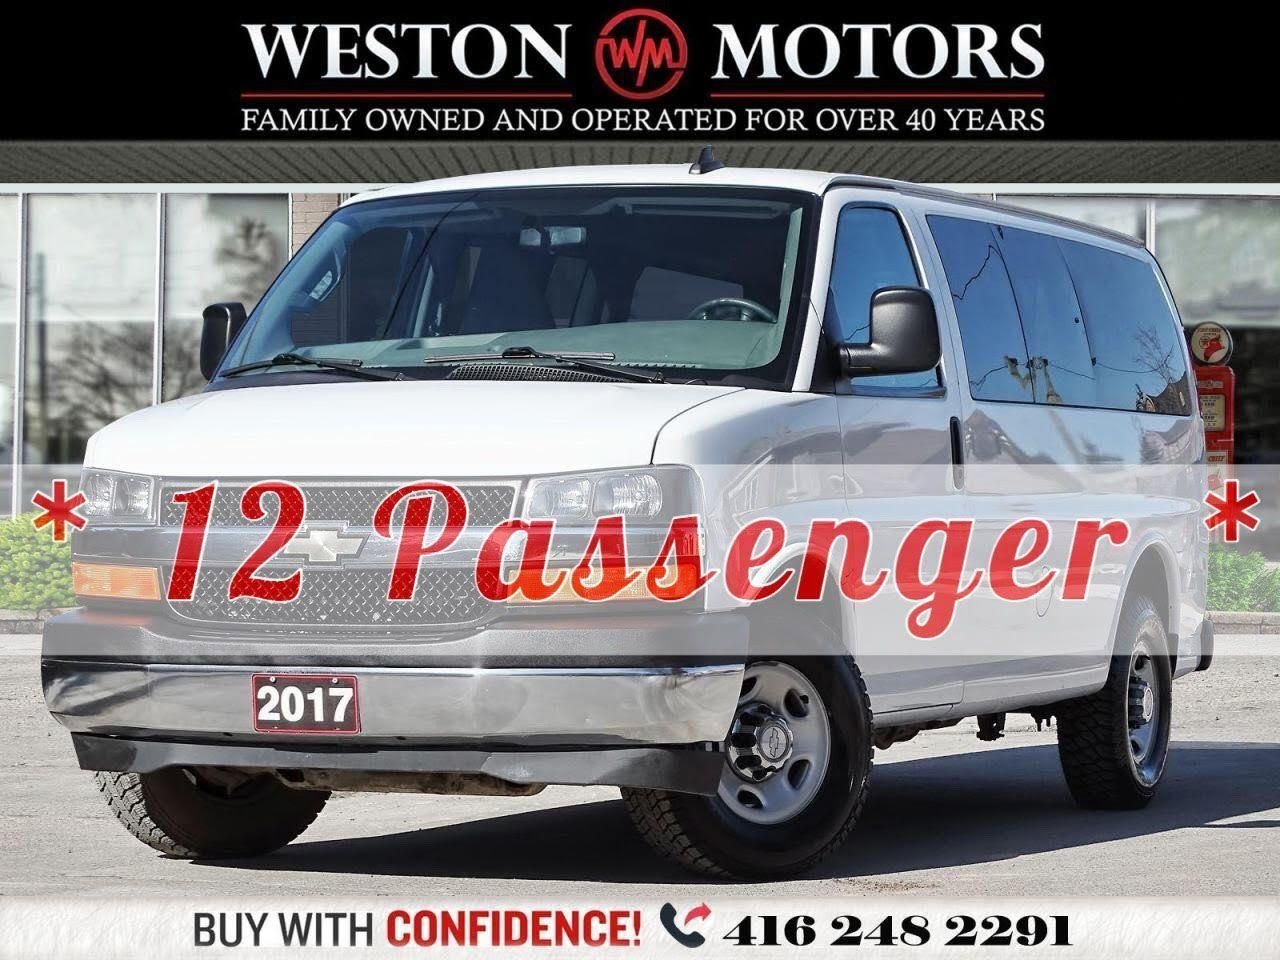 2017 Chevrolet Express LT*GREAT SHAPE*ACCIDENT FREE*12 PASSENGER!